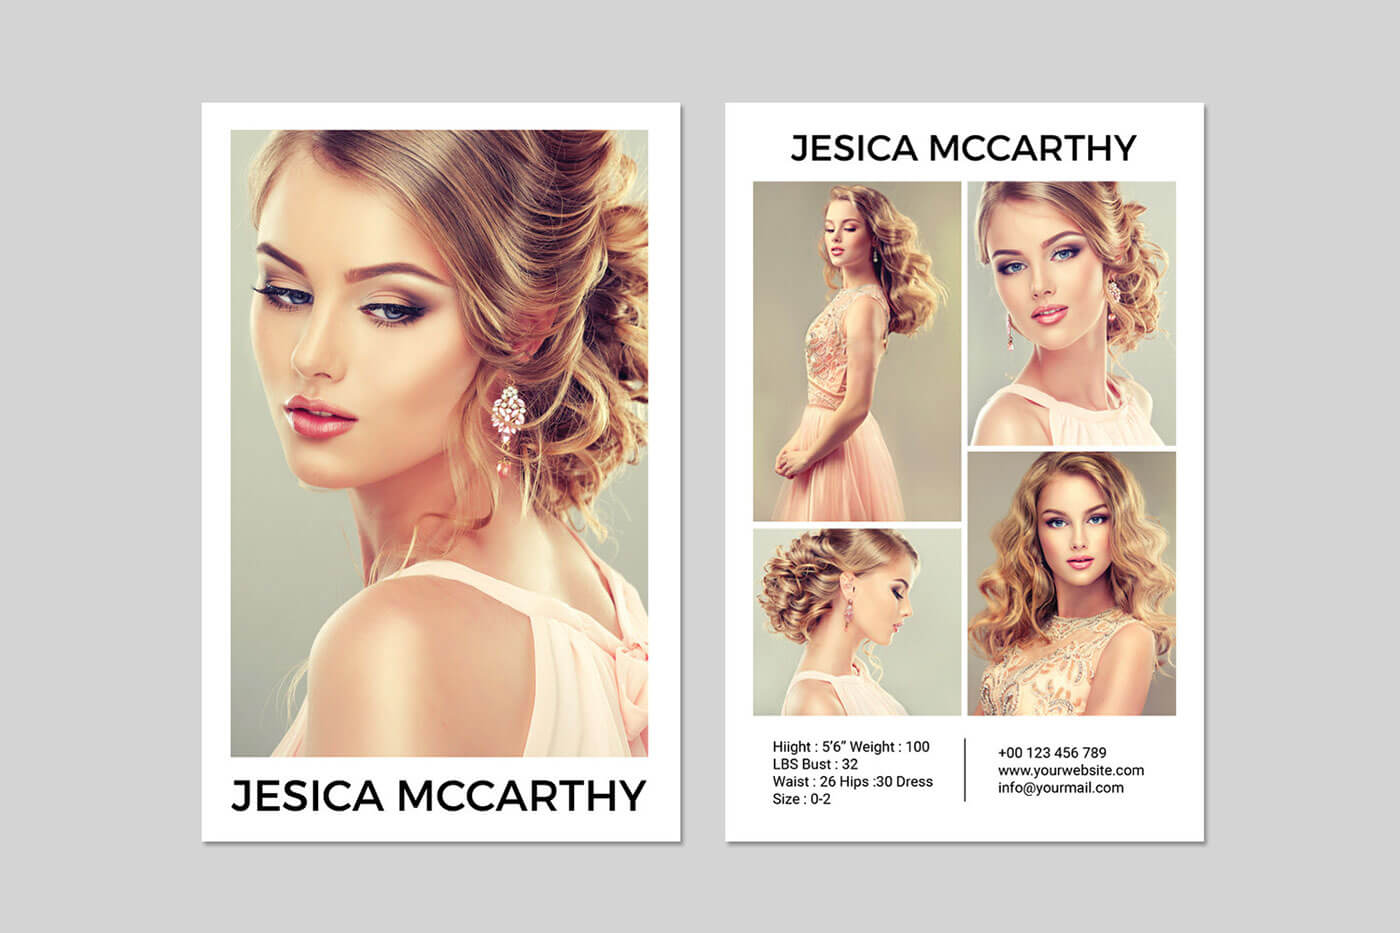 031 Model Comp Card Template Outstanding Ideas Psd Free Within Free Model Comp Card Template Psd